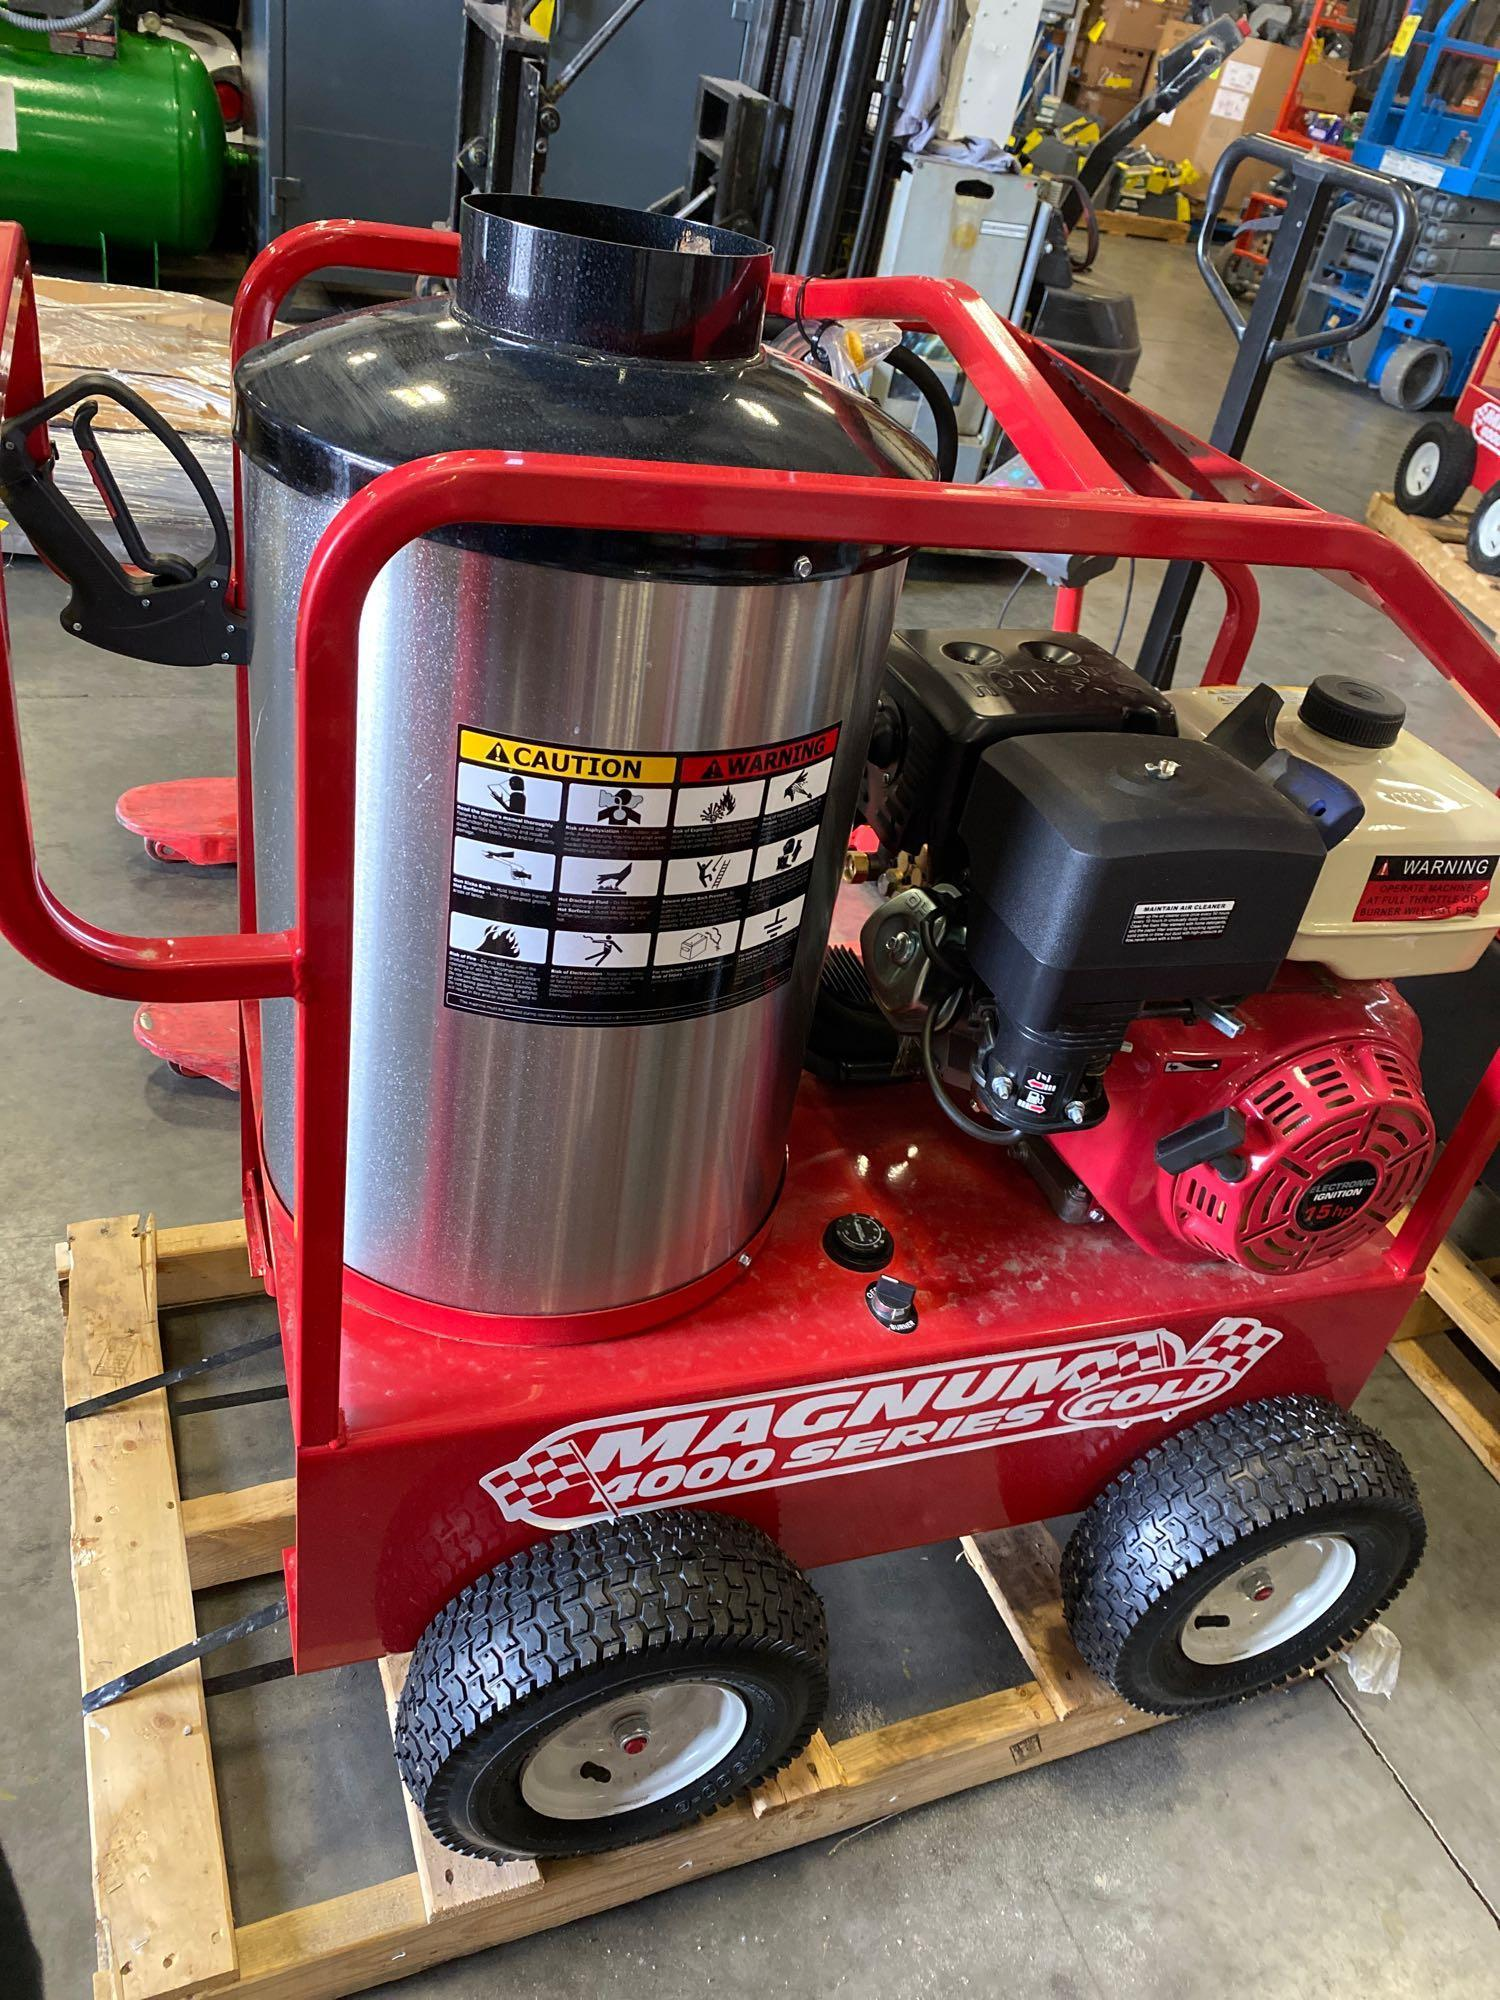 NEW/UNUSED 2020 MAGNUM 4000 HEATED PRESSURE WASHER, ELECTRIC START - Image 5 of 6